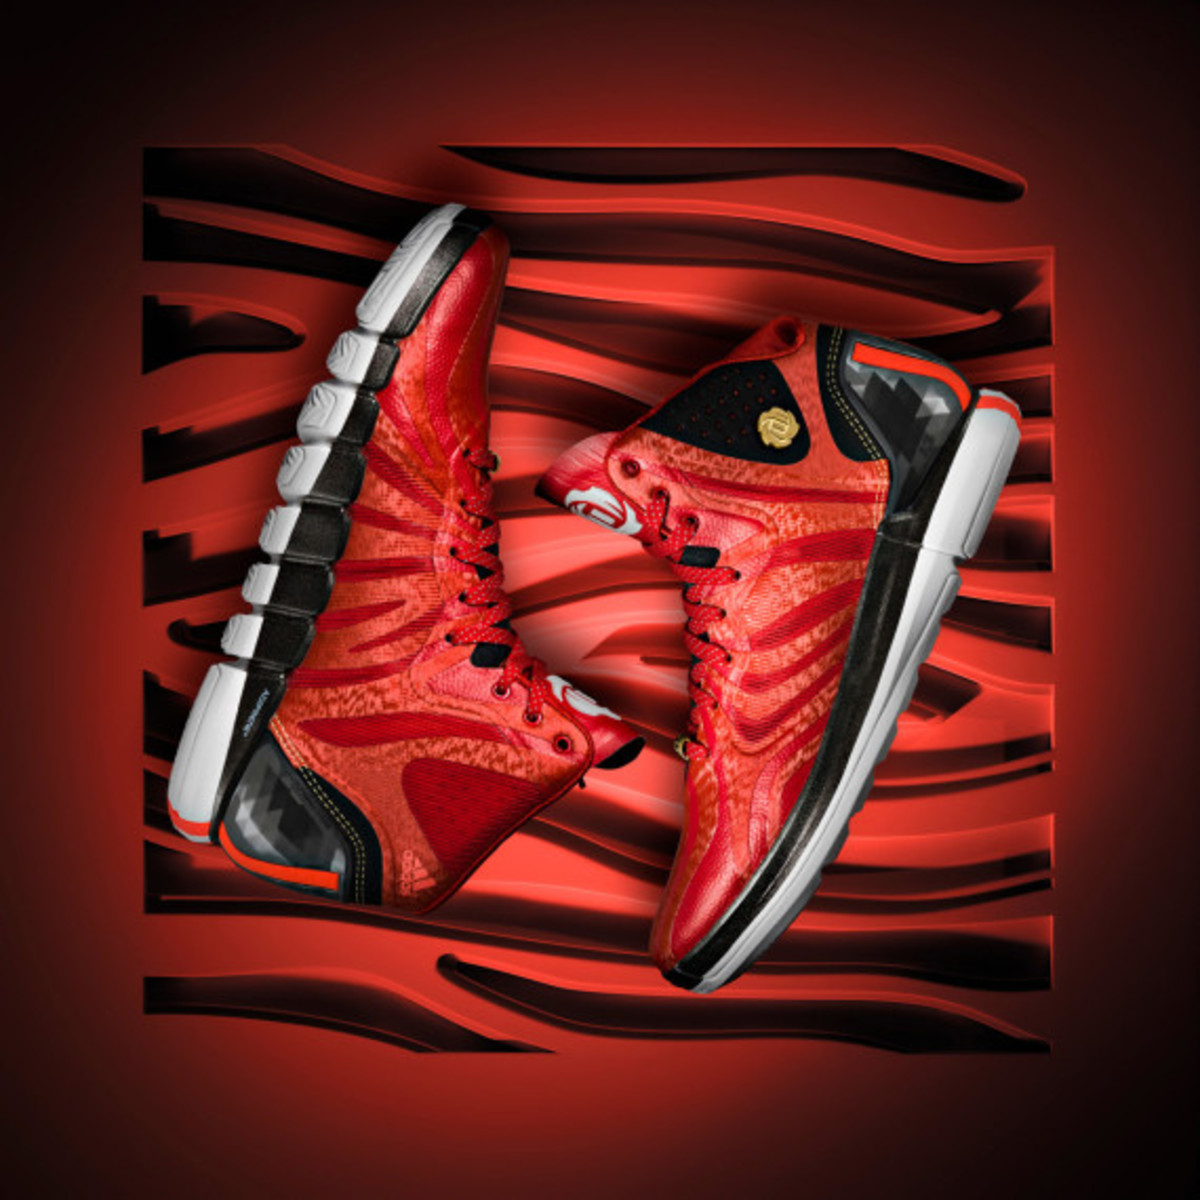 adidas-d-rose-4.5-unveiled-25